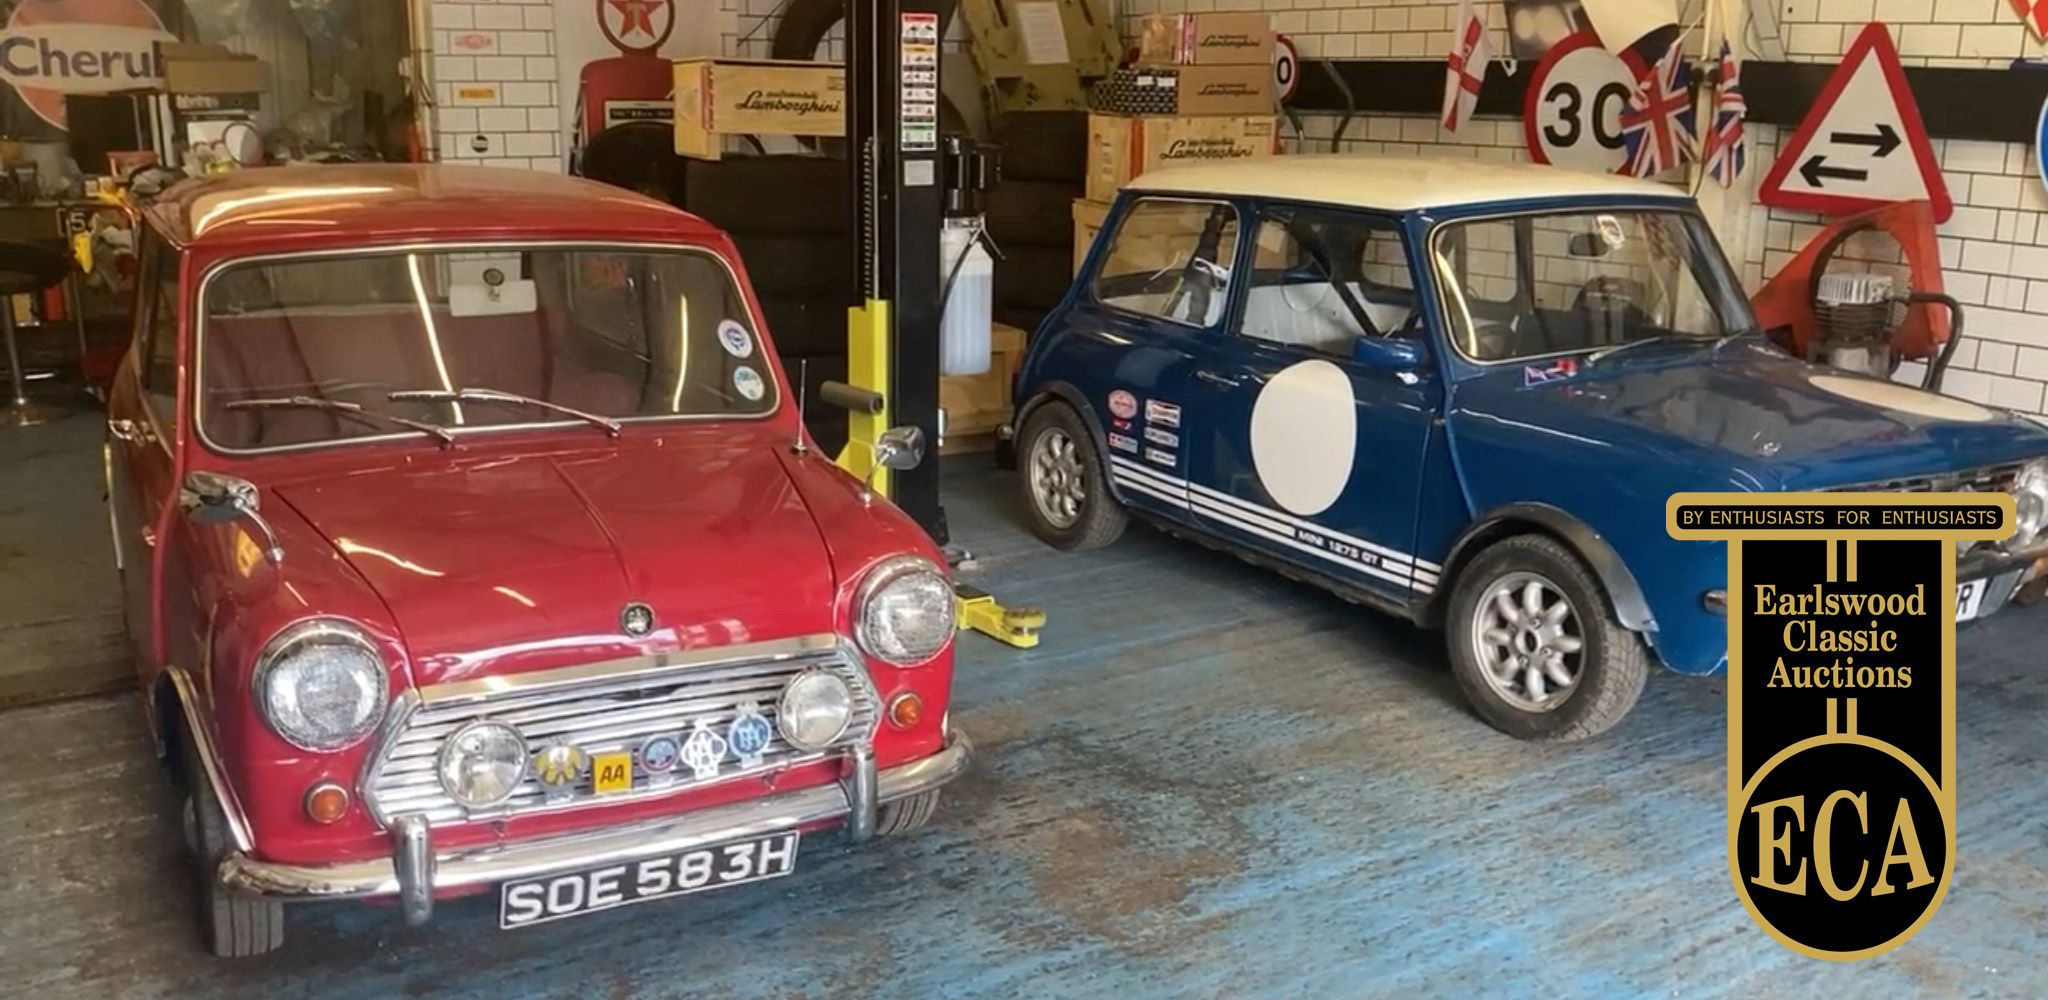 Earlswood Classic Auctions Classic and Performance Auction